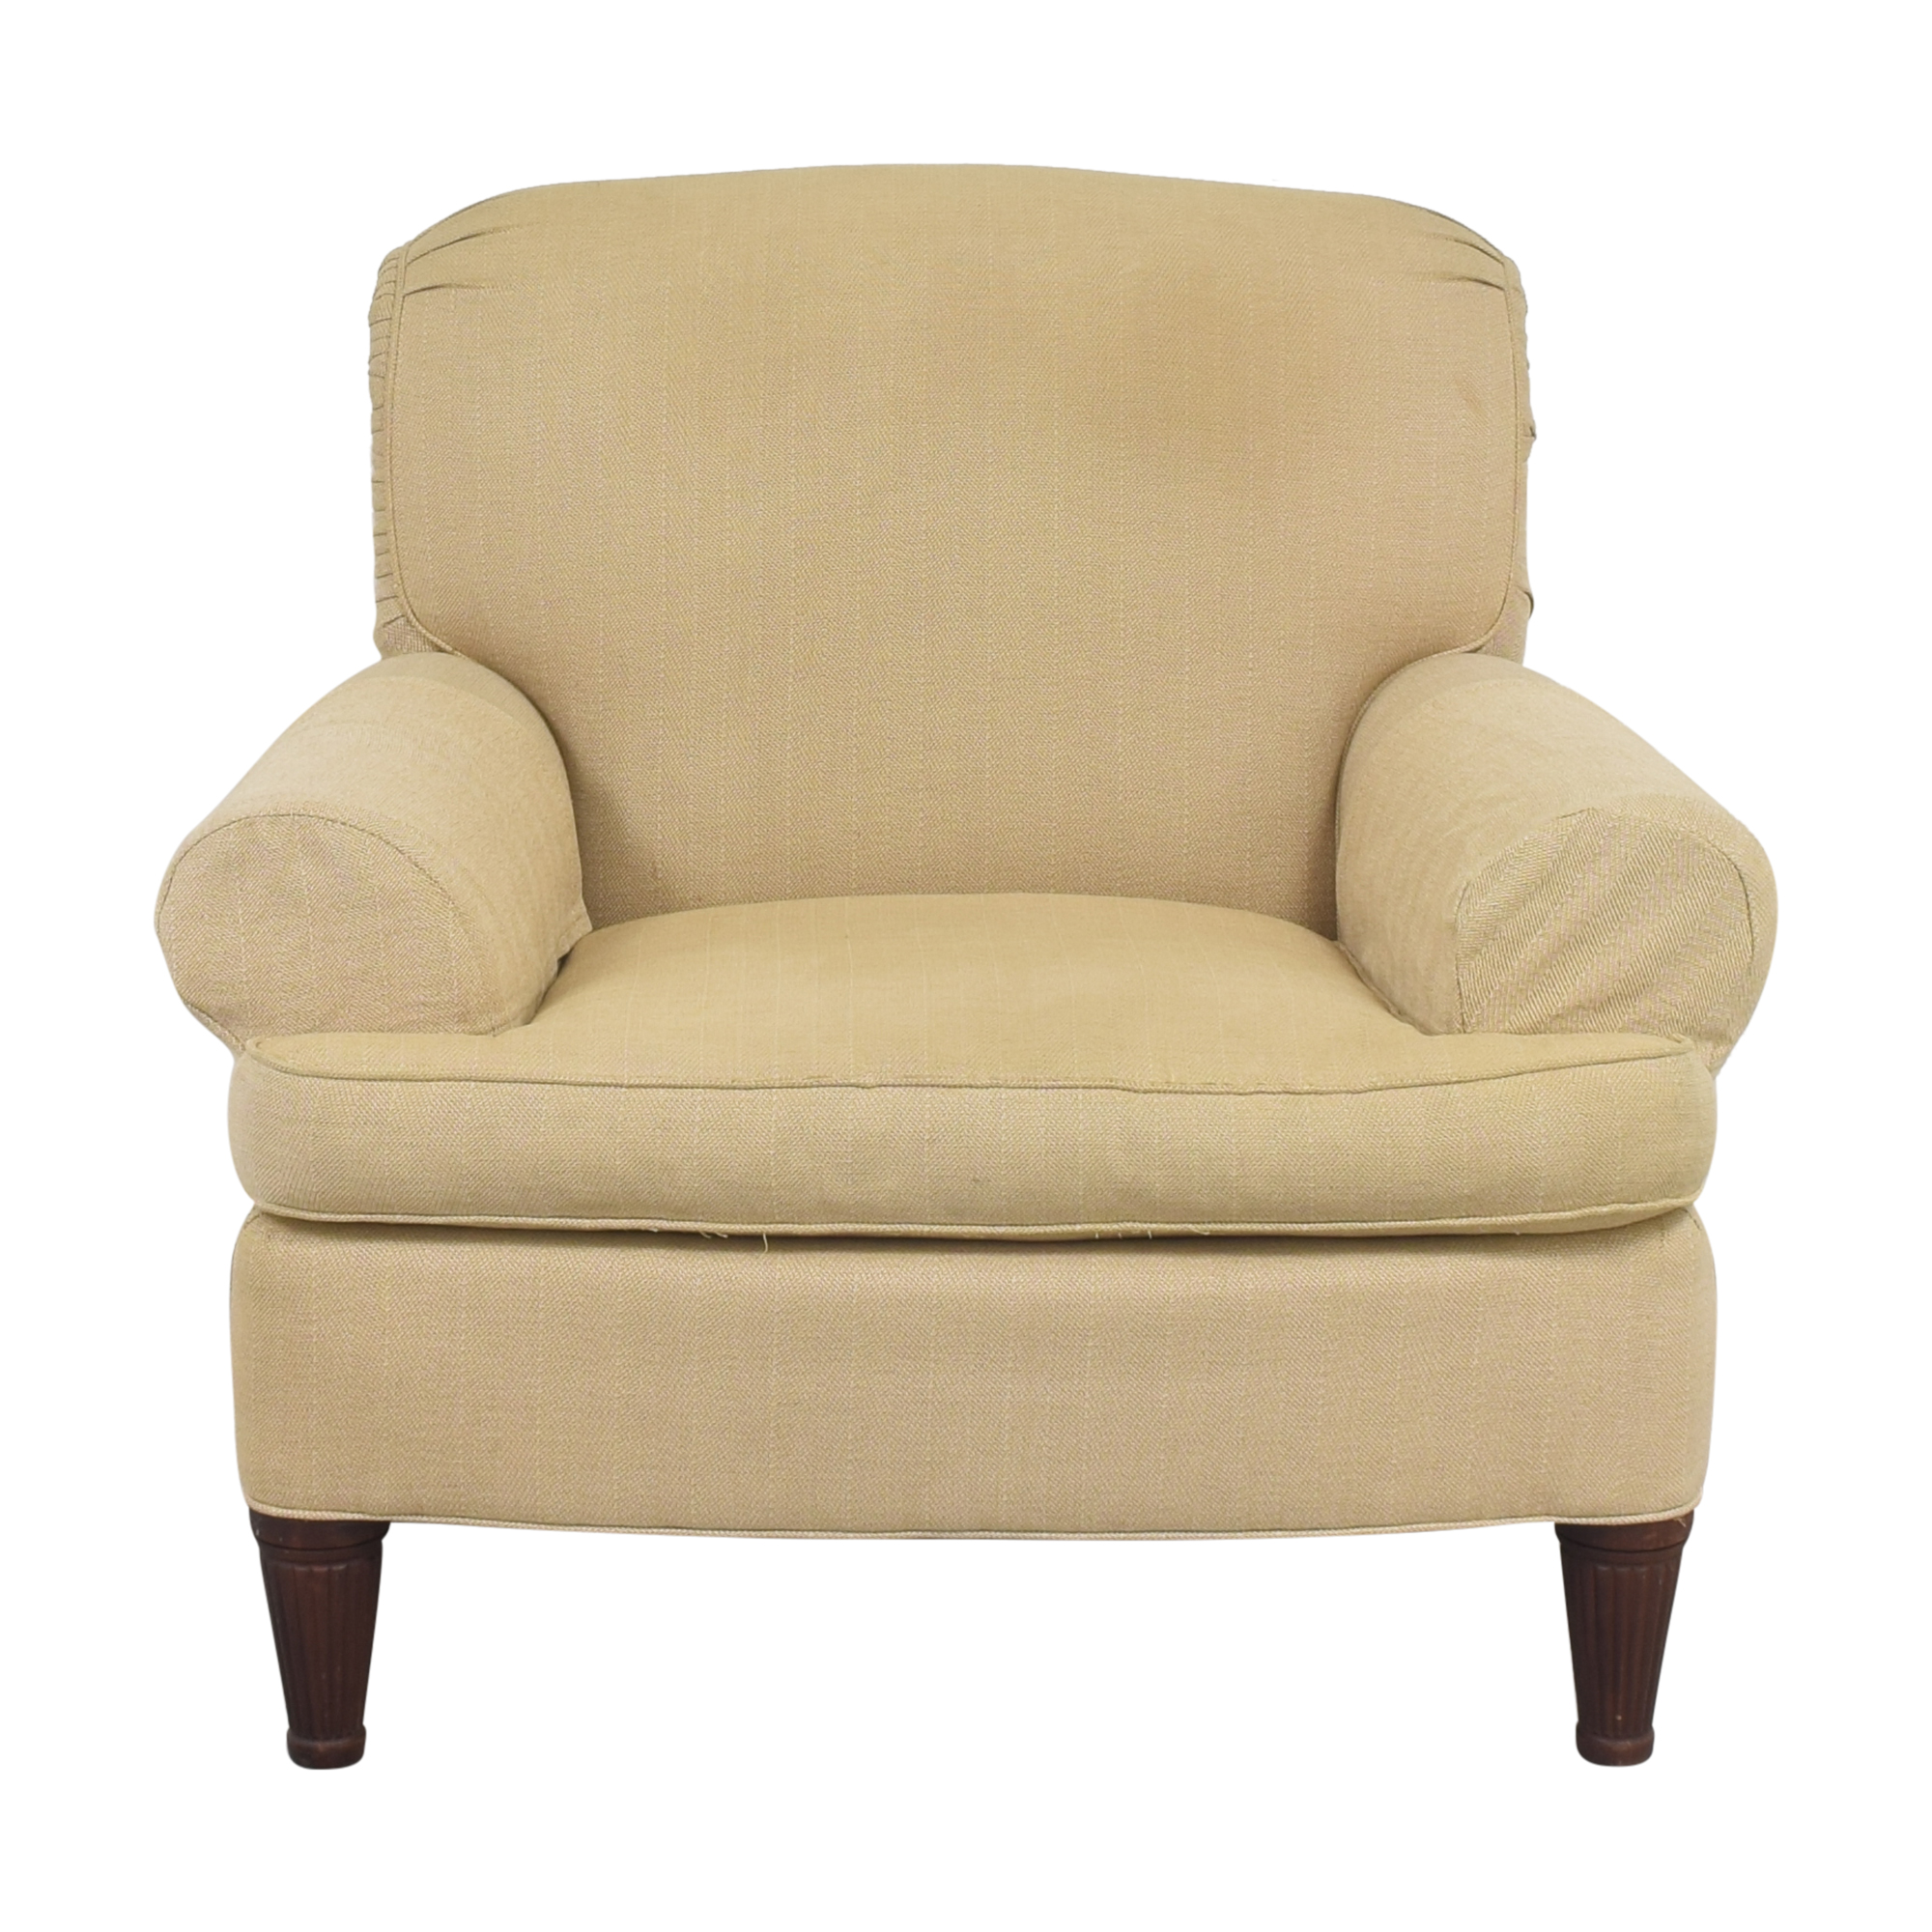 Ralph Lauren Home Accent Chair / Accent Chairs